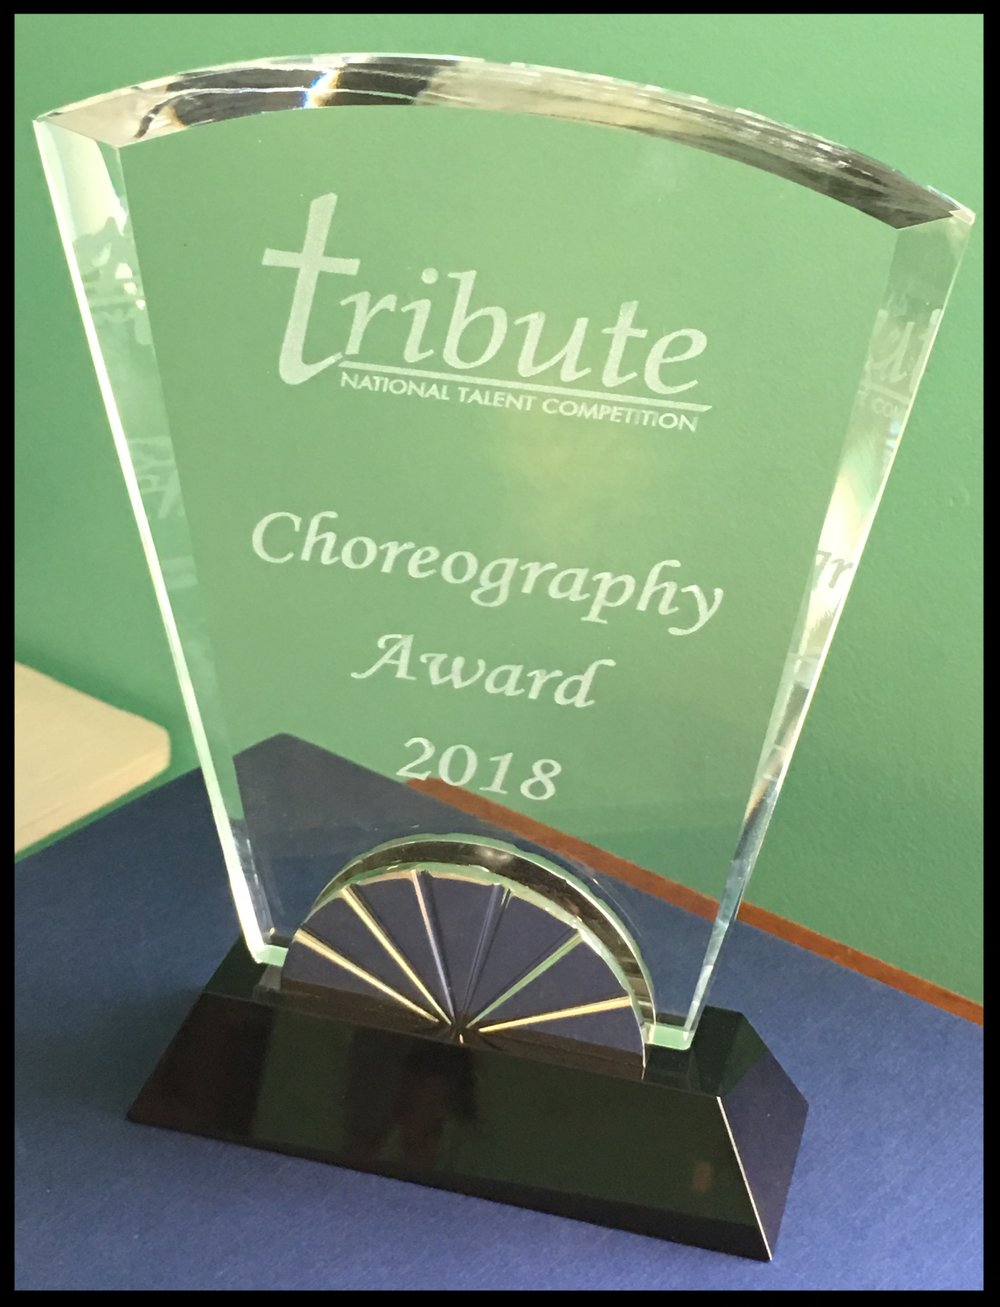 CONGRATULATIONS  to  RACHEL DERATANY  for receiving a prestigious  CHOREOGRAPHY  award at the 2018 Tribute National Talent Competition!